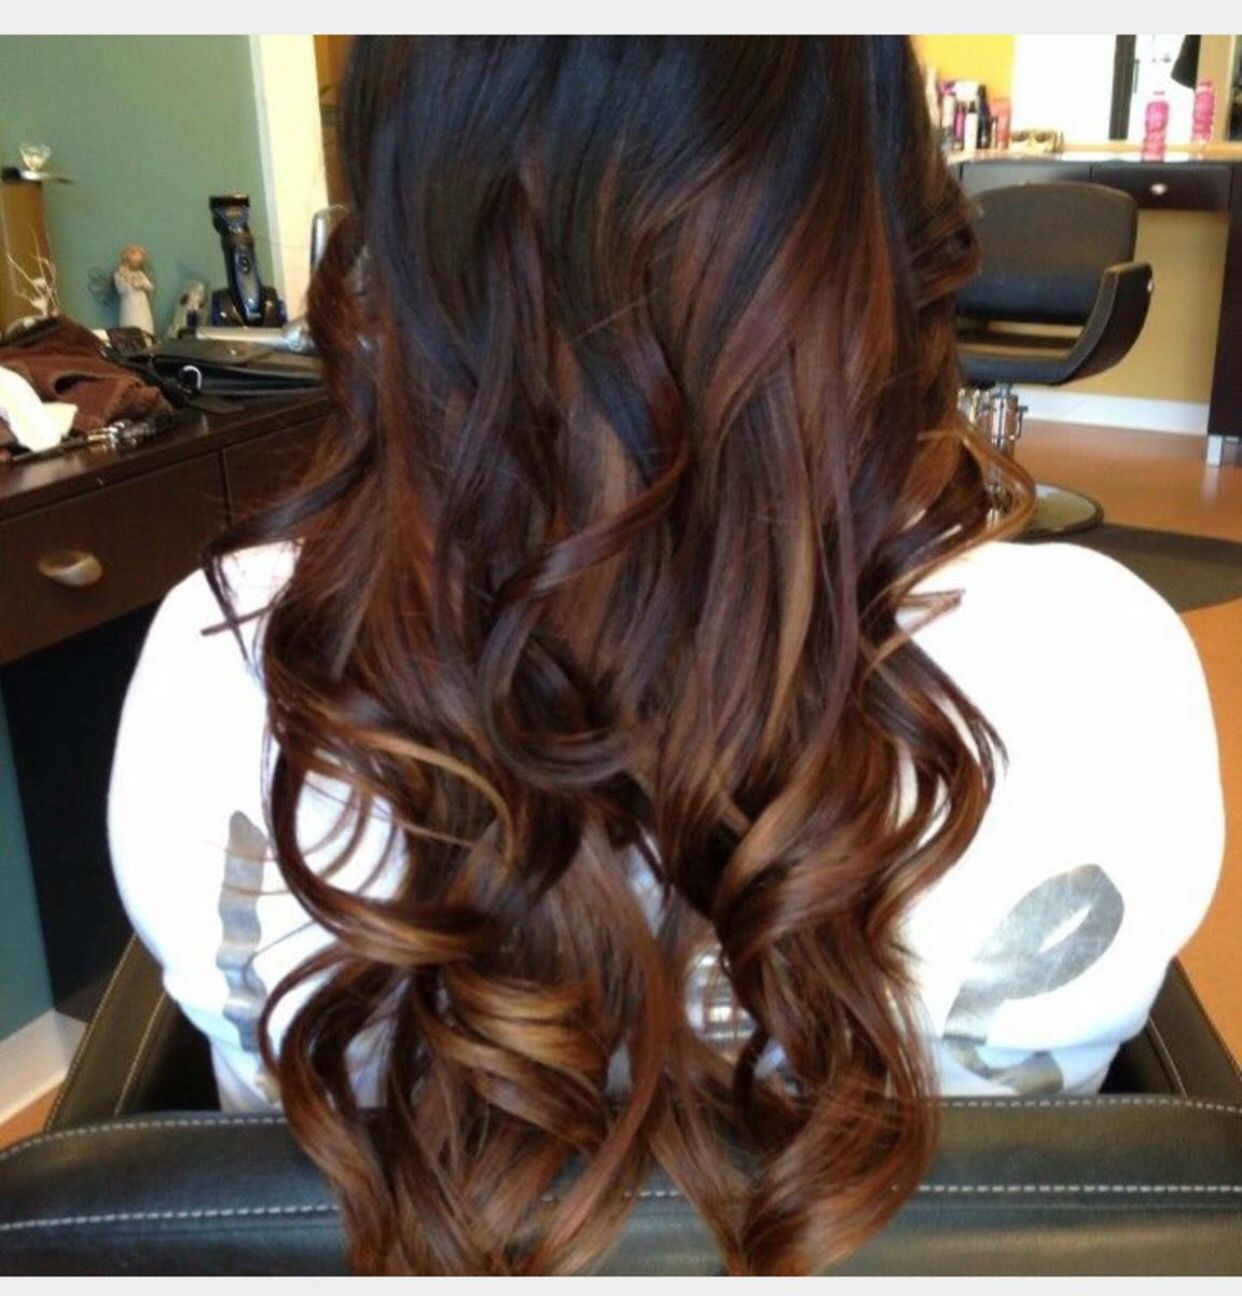 I want this color!